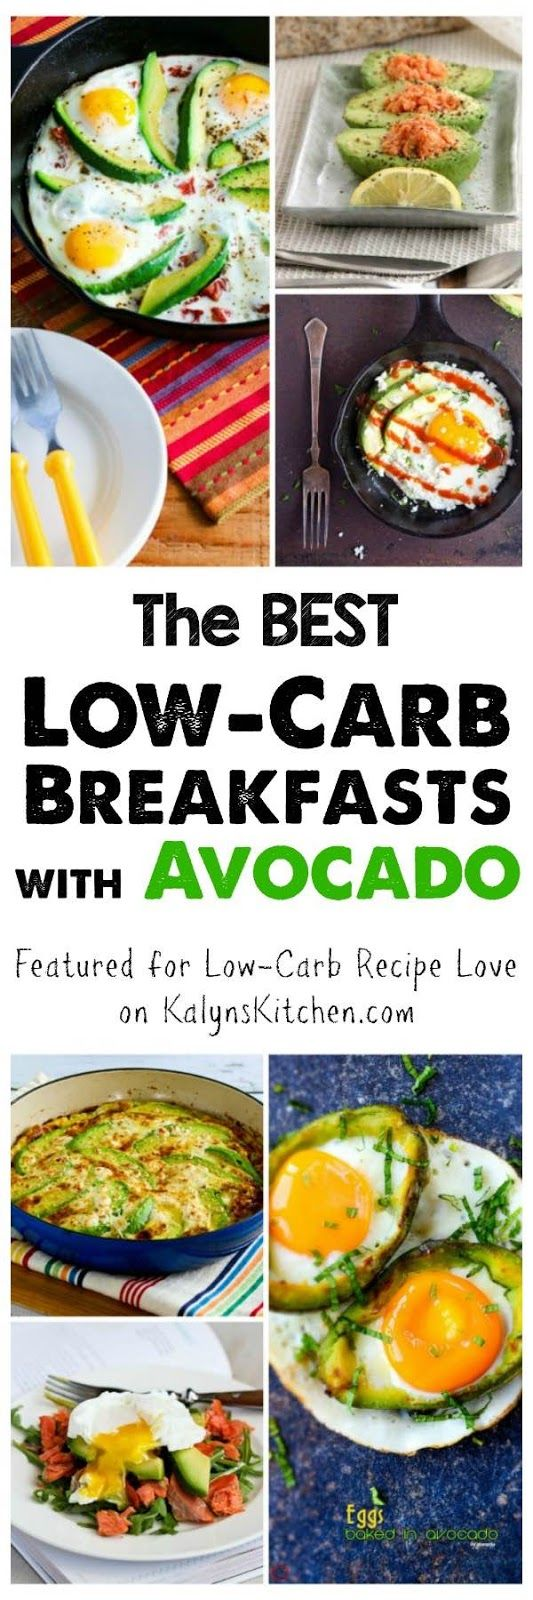 Avocados are always a treat, and I especially like them this time of year when I'm bored with winter foods. Here are The BEST Low-Carb Breakfasts with Avocado; enjoy!  [featured for Low-Carb Recipe Love on KalynsKitchen.com]